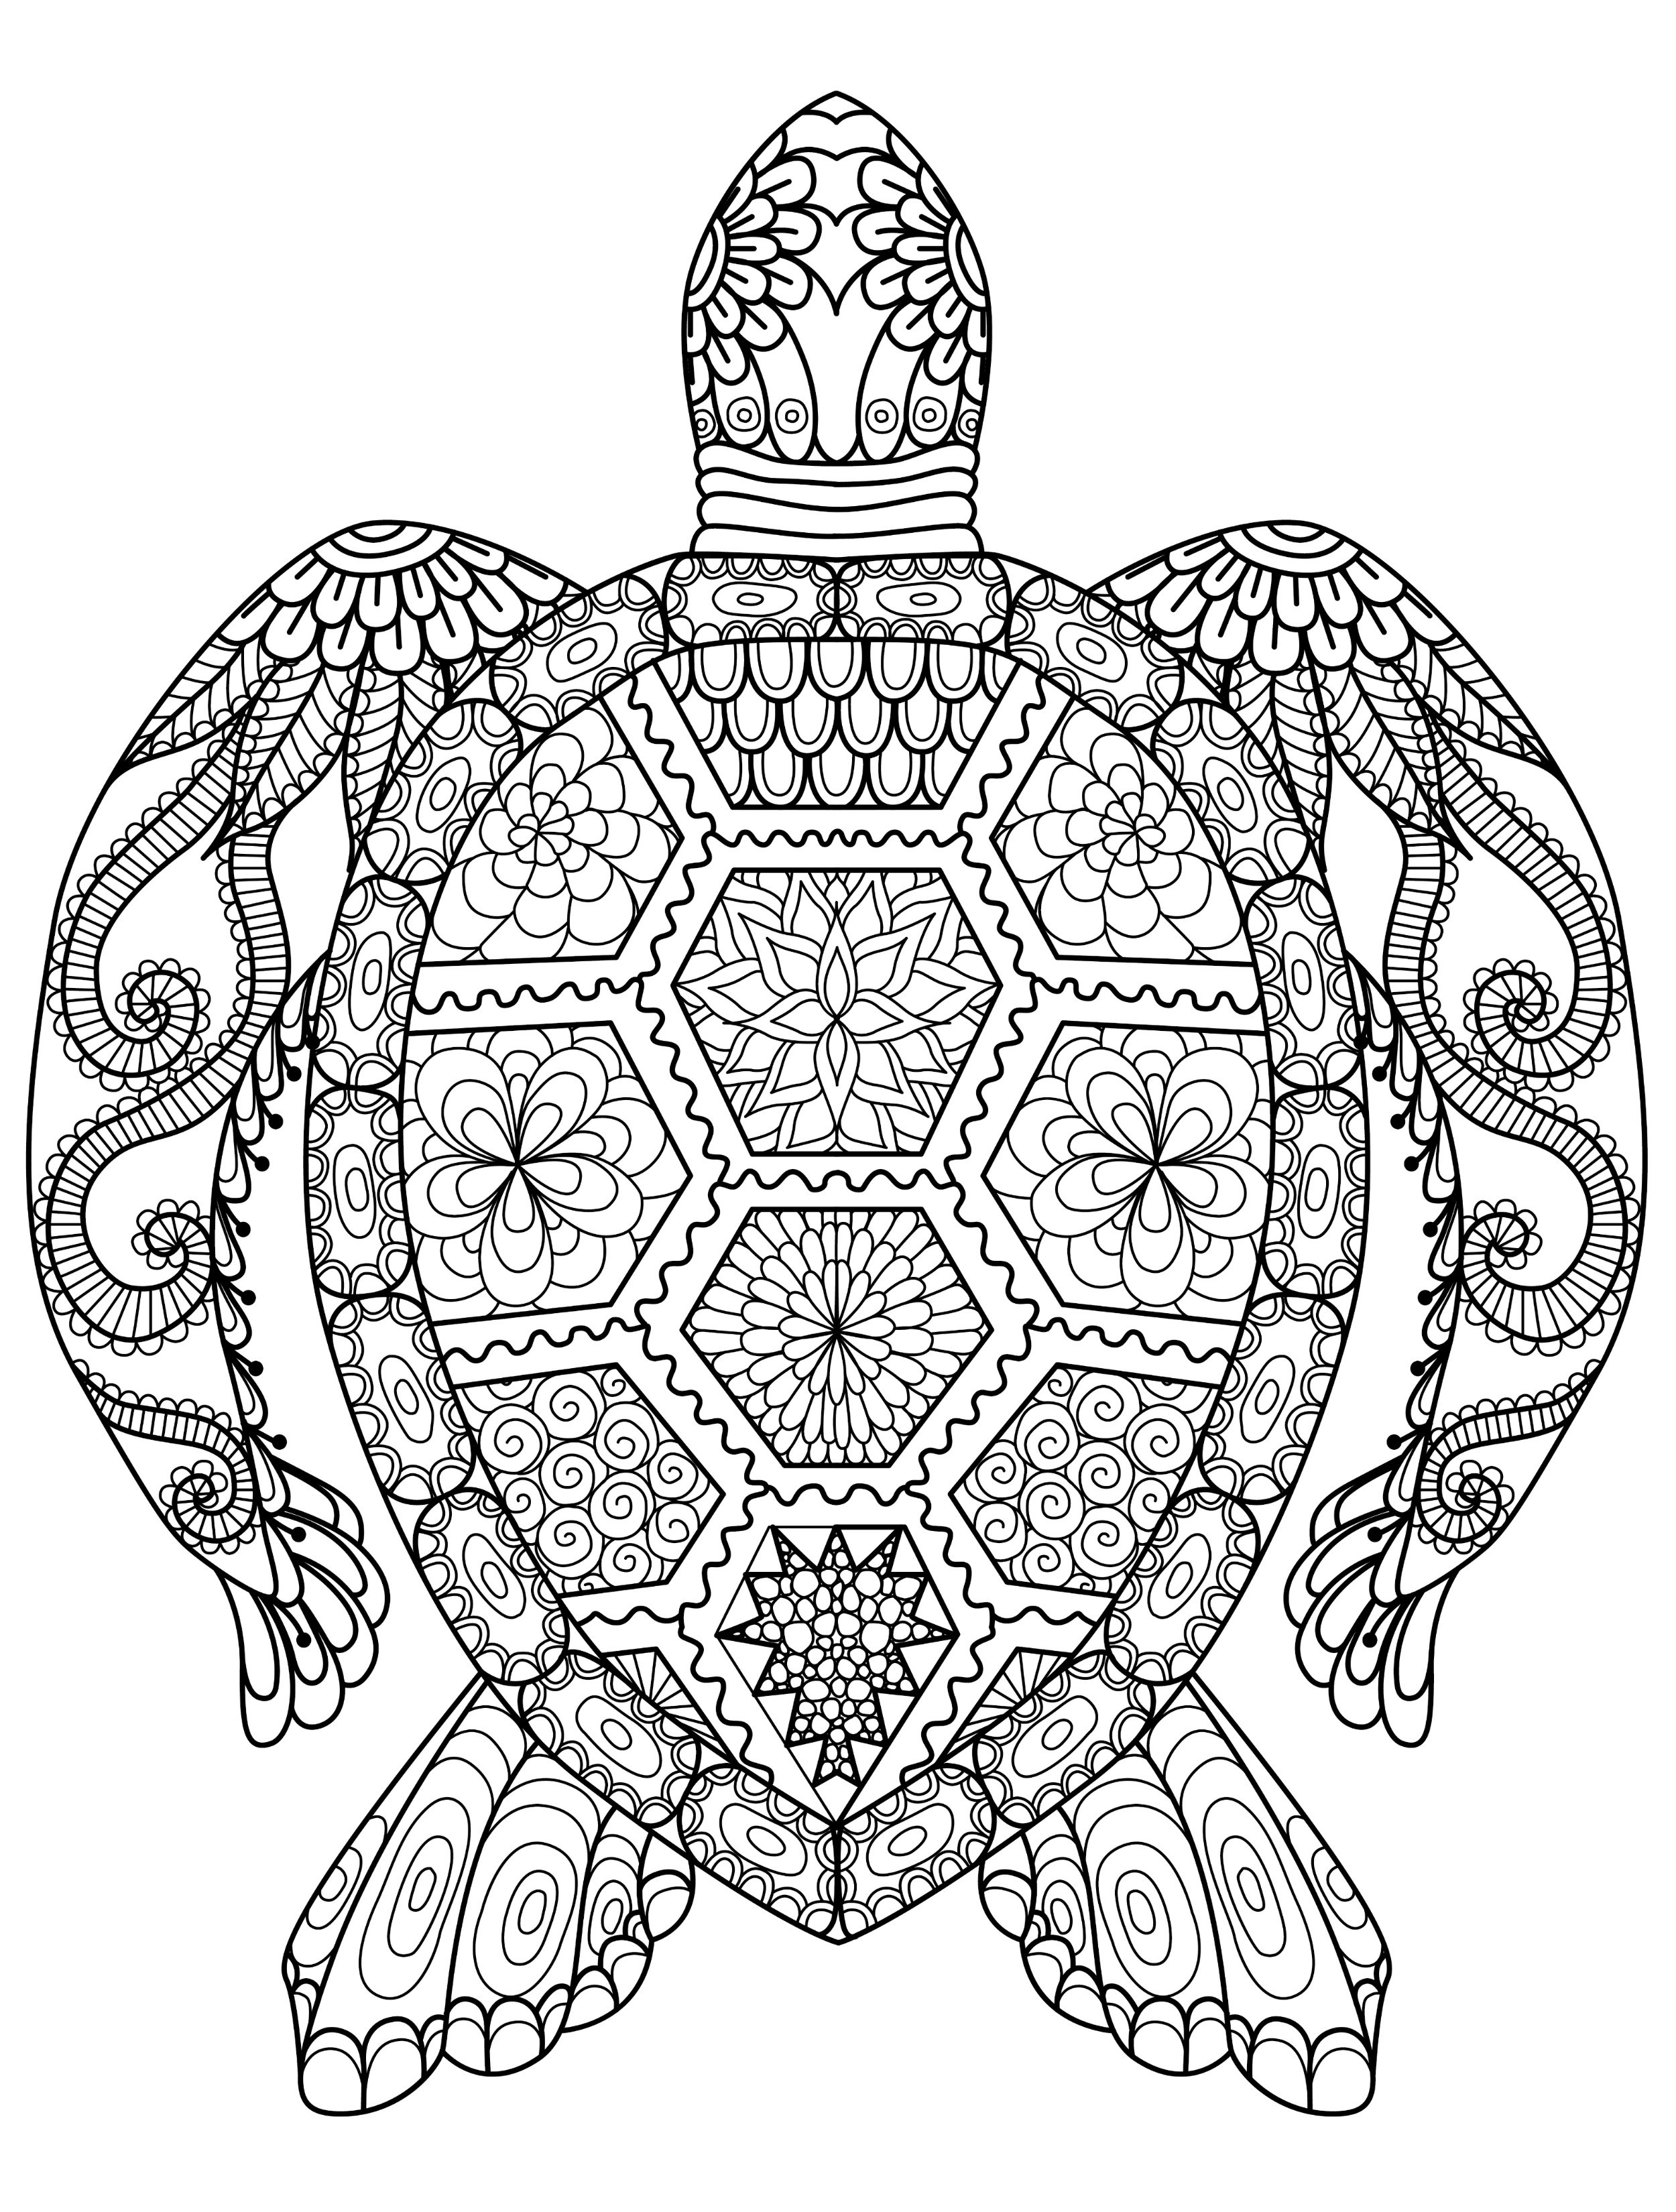 coloring worksheets animals zebra coloring pages free printable kids coloring pages worksheets animals coloring